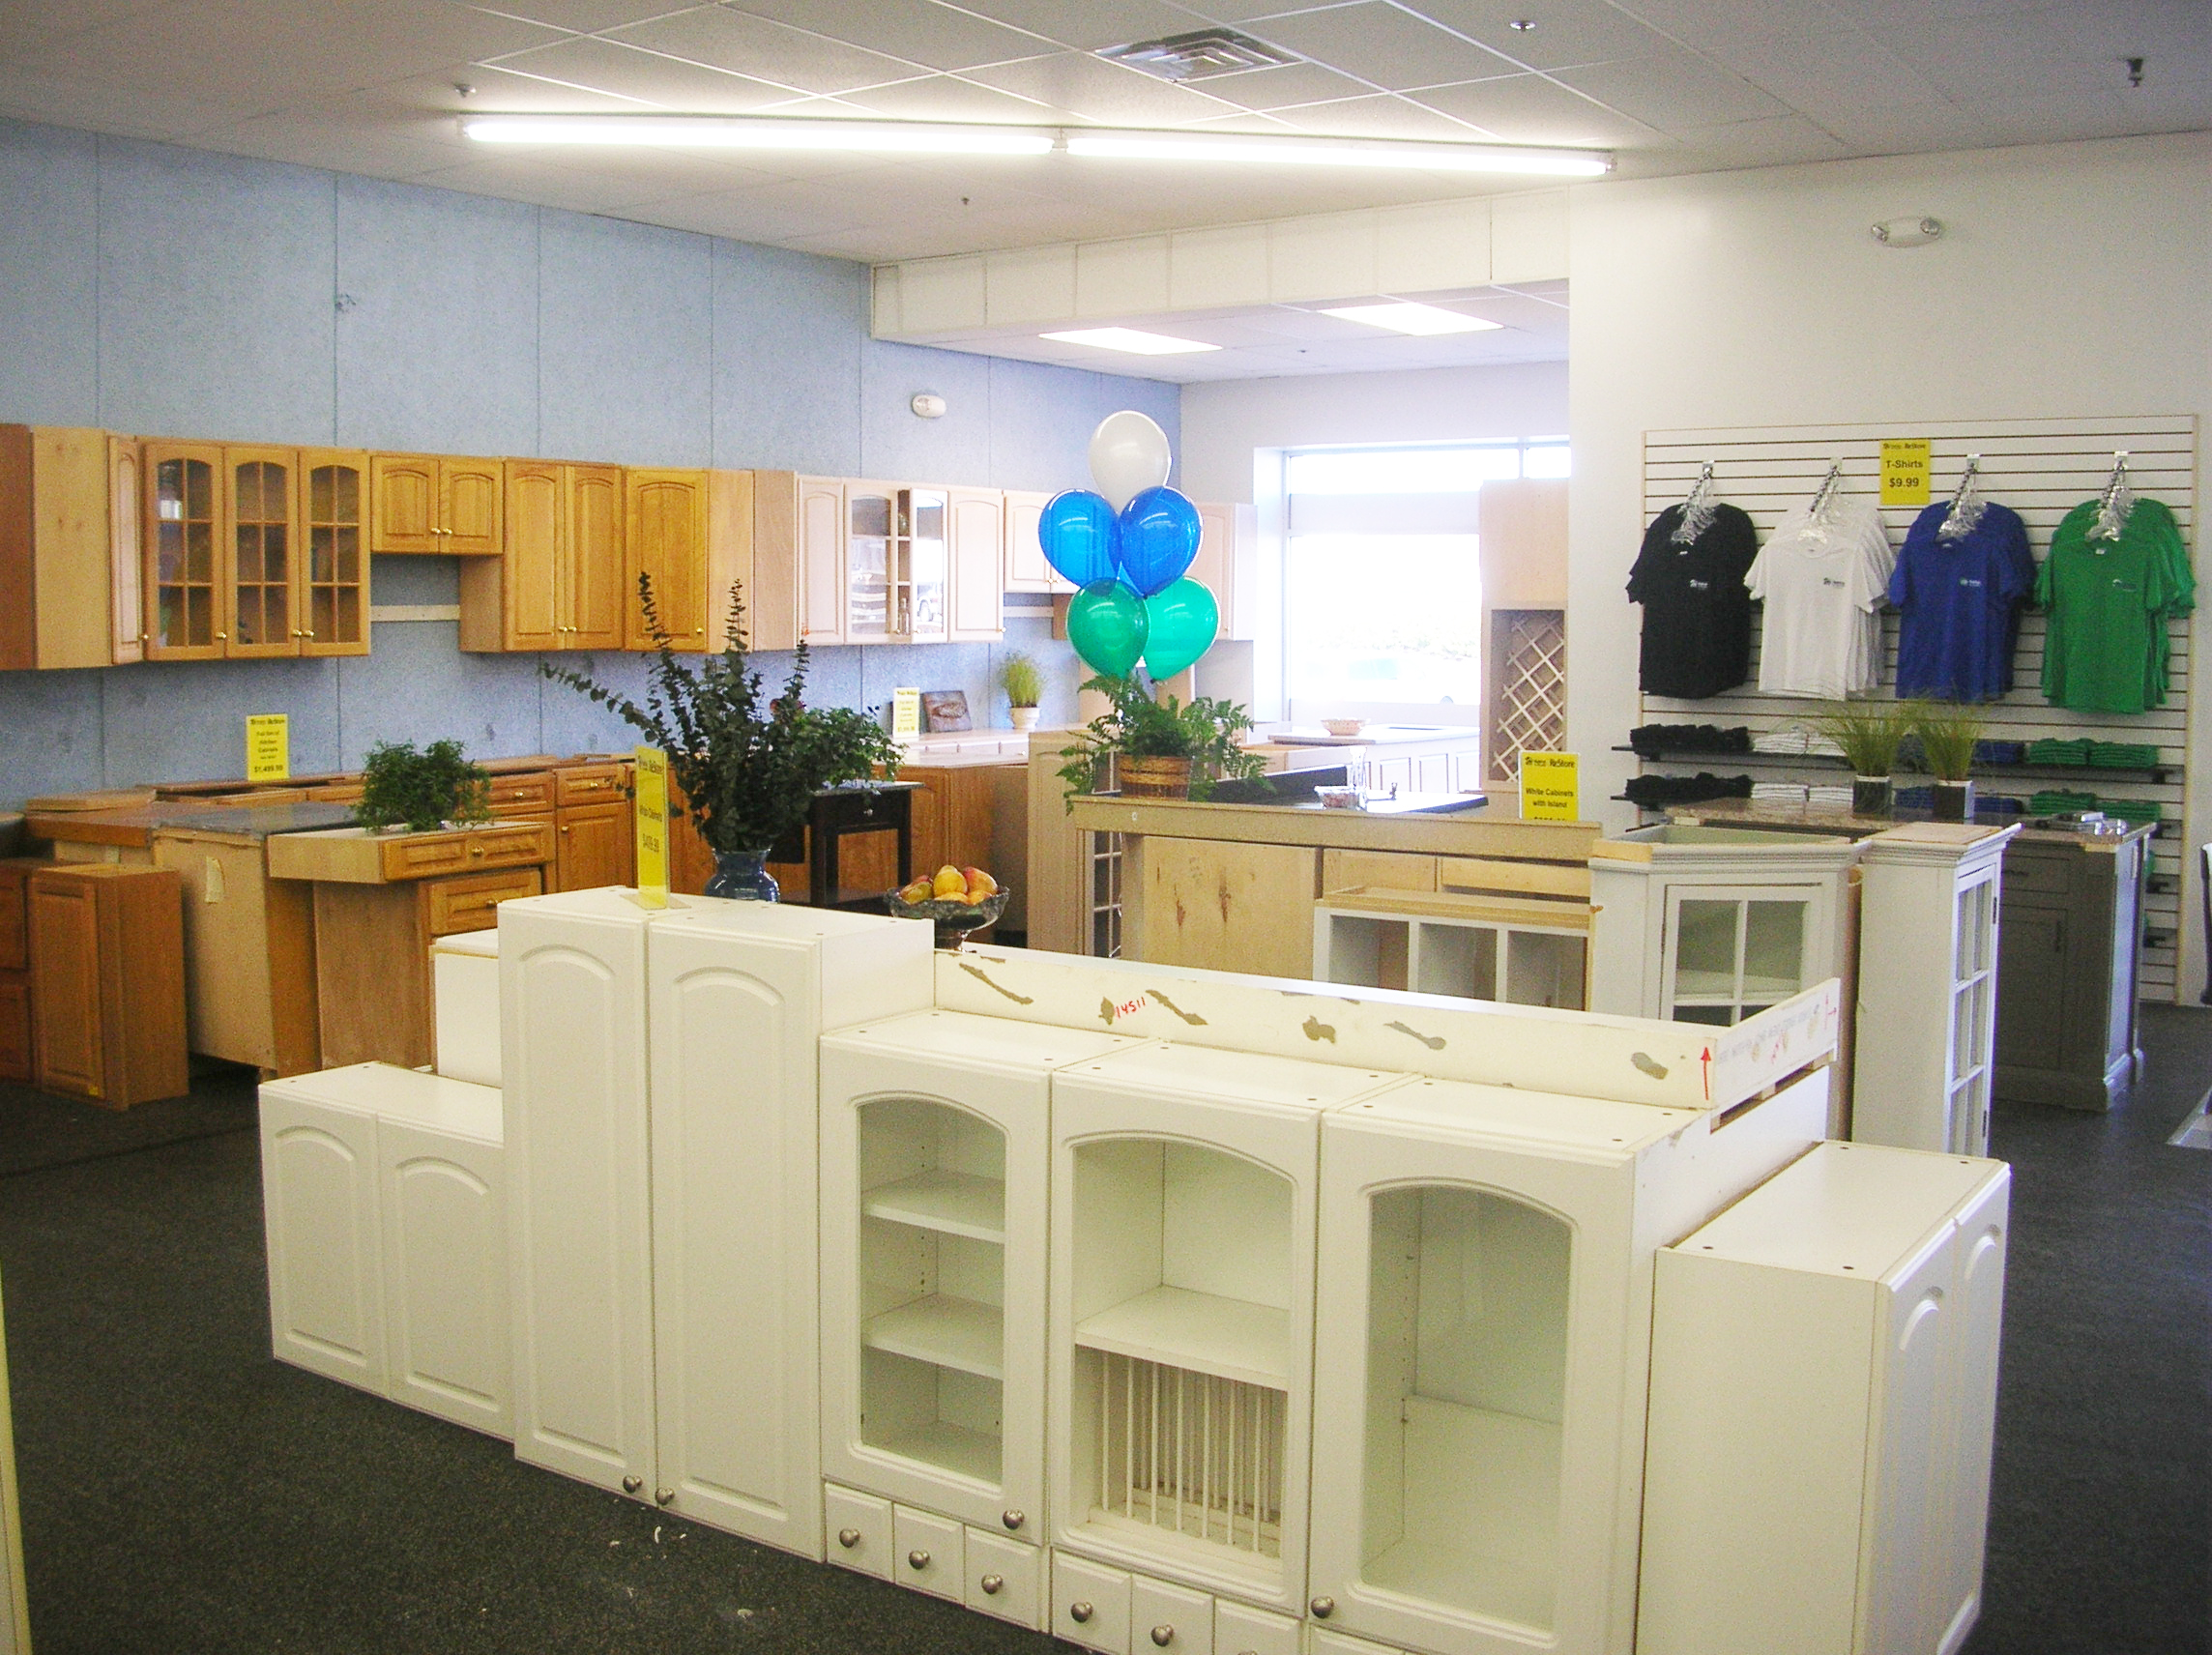 Restore donate for Restoring old kitchen cabinets